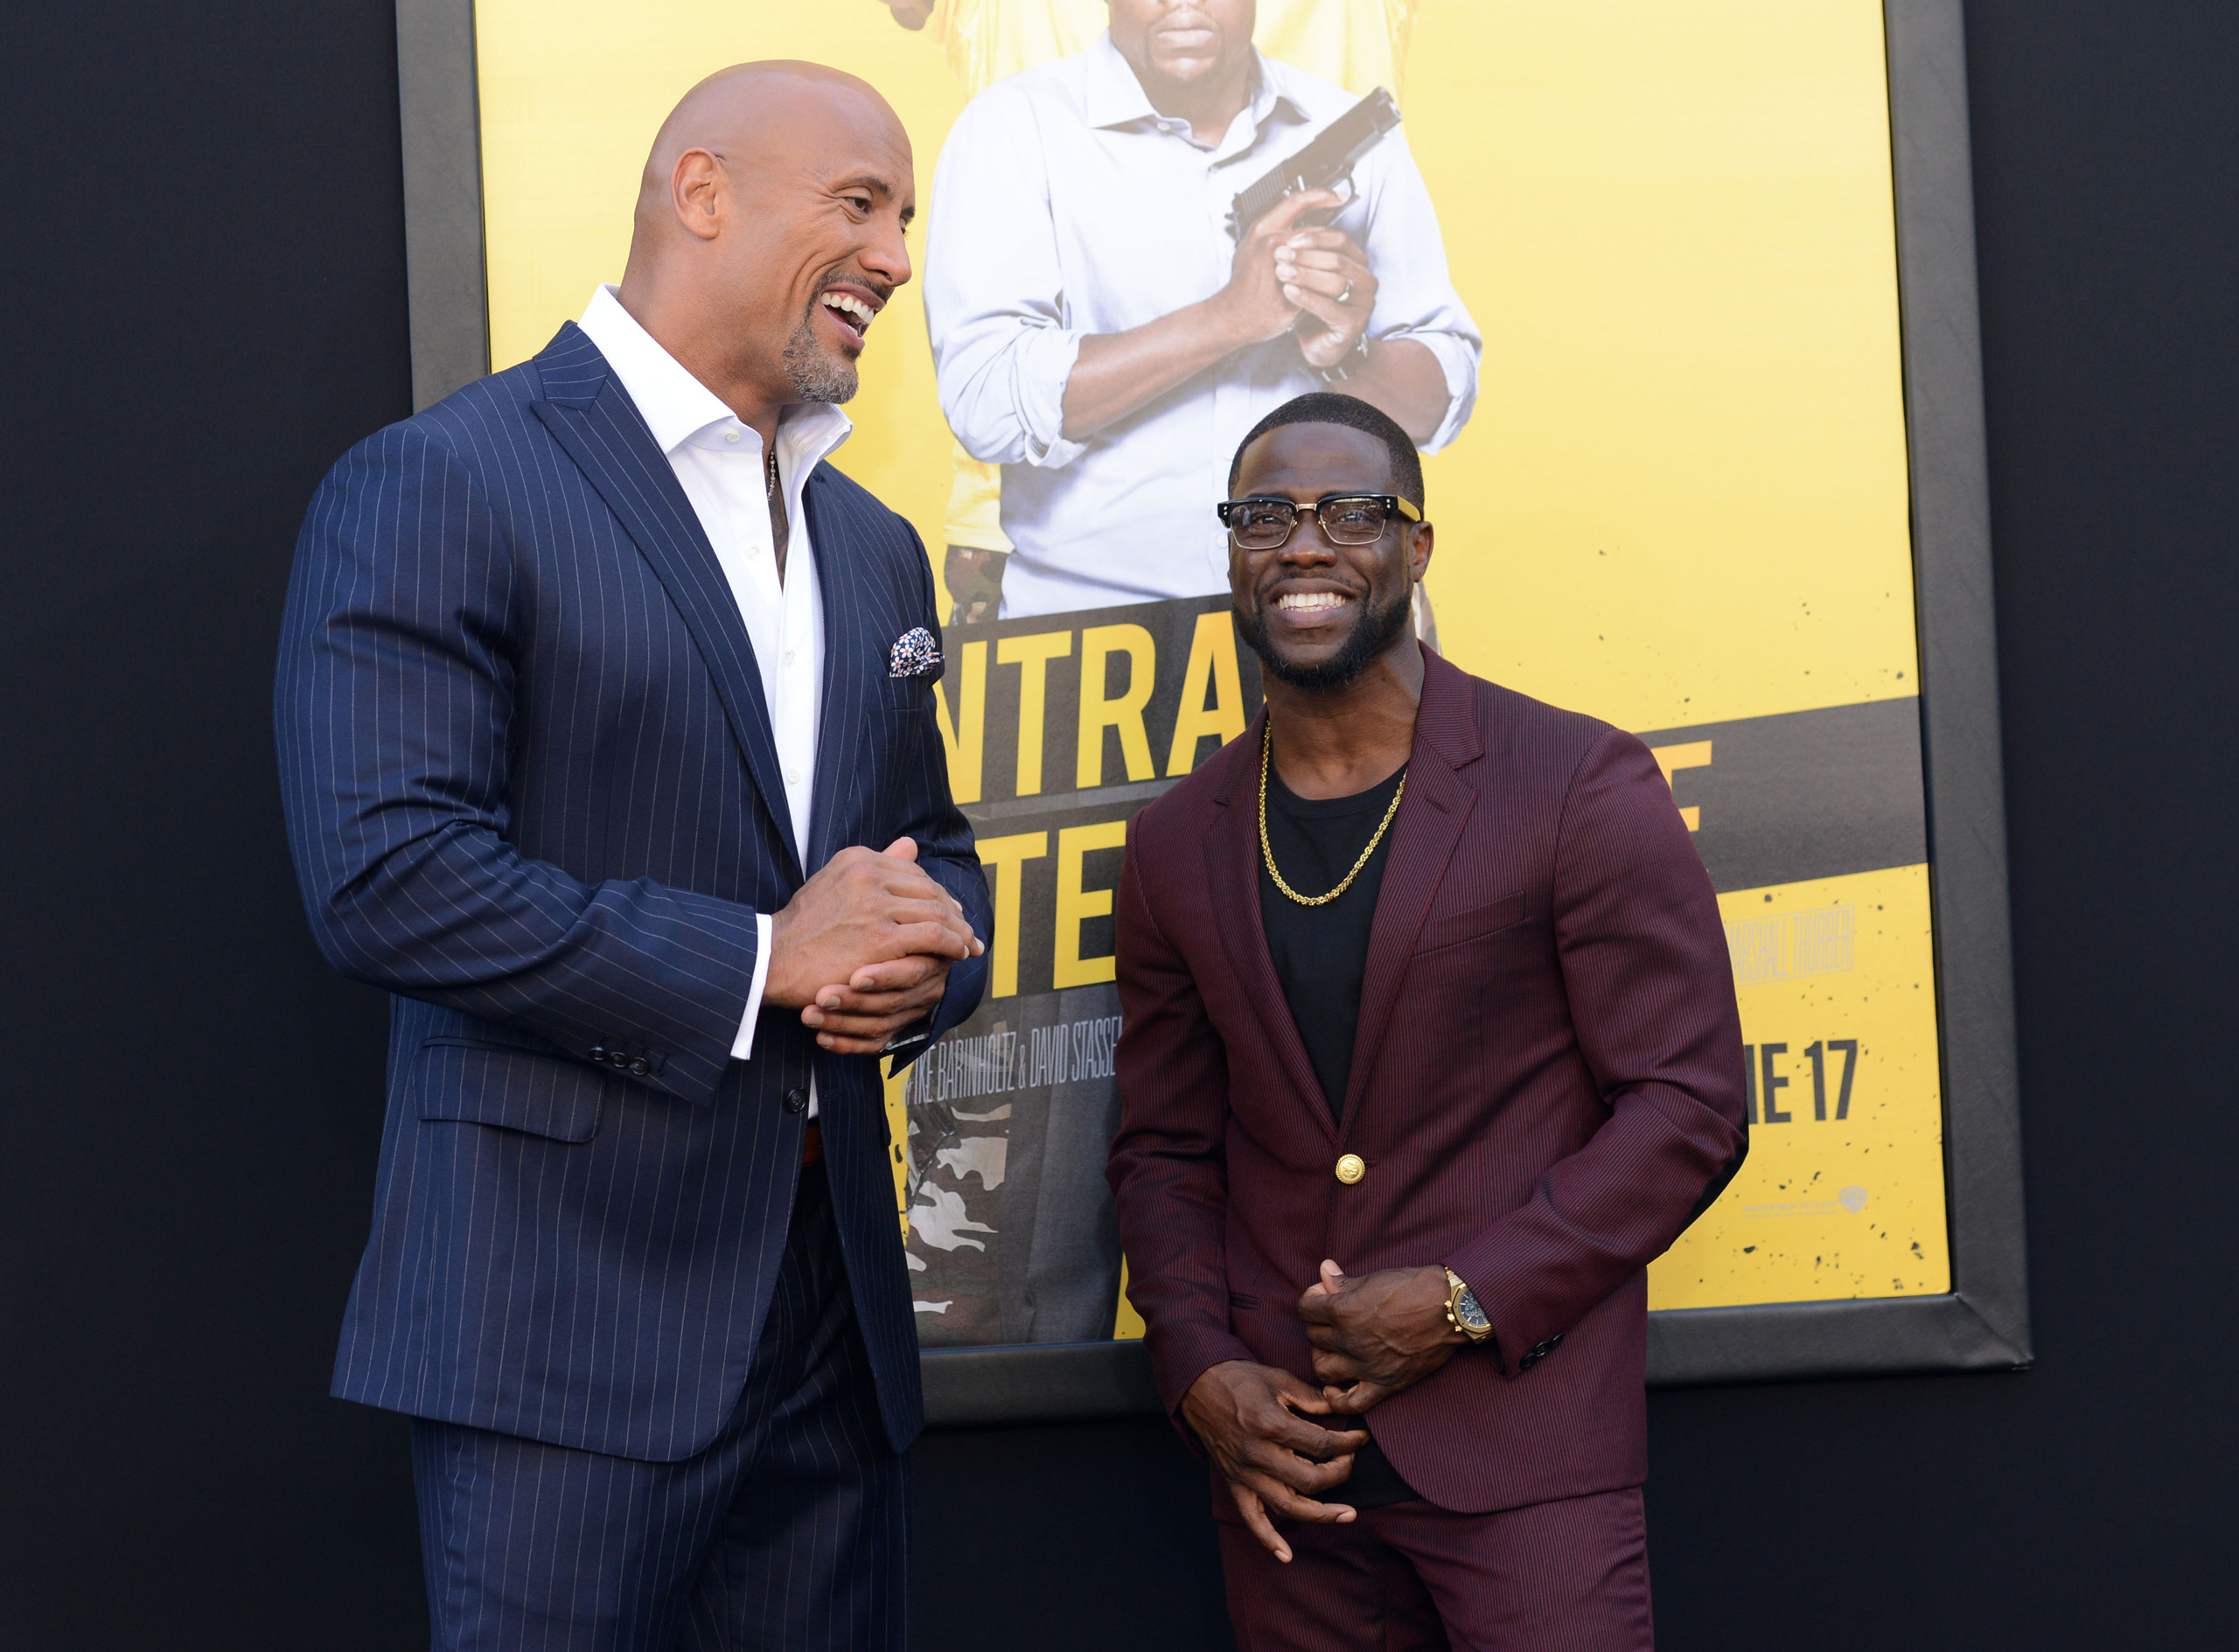 Dwayne Johnson and Kevin Hart attend the Warner Bros Premiere of Central Intelligence, in Westwood, Calif. on June 10, 2016.